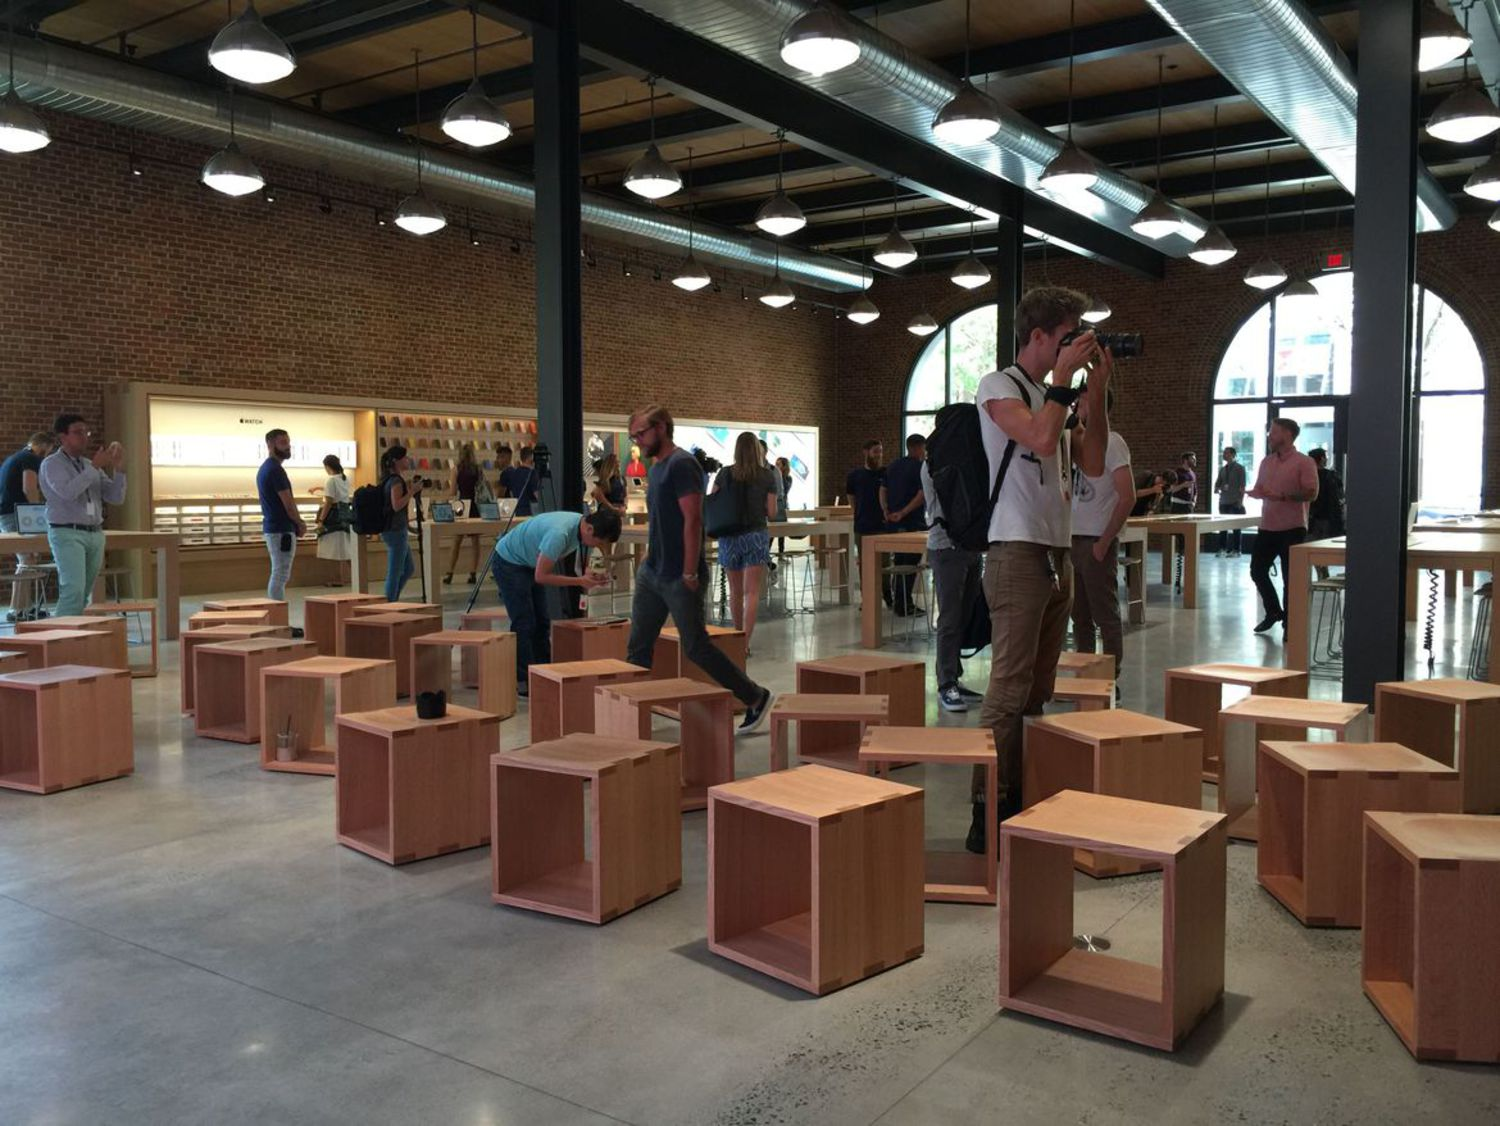 Apple says the wooden cubes are for customers and community members to gather.